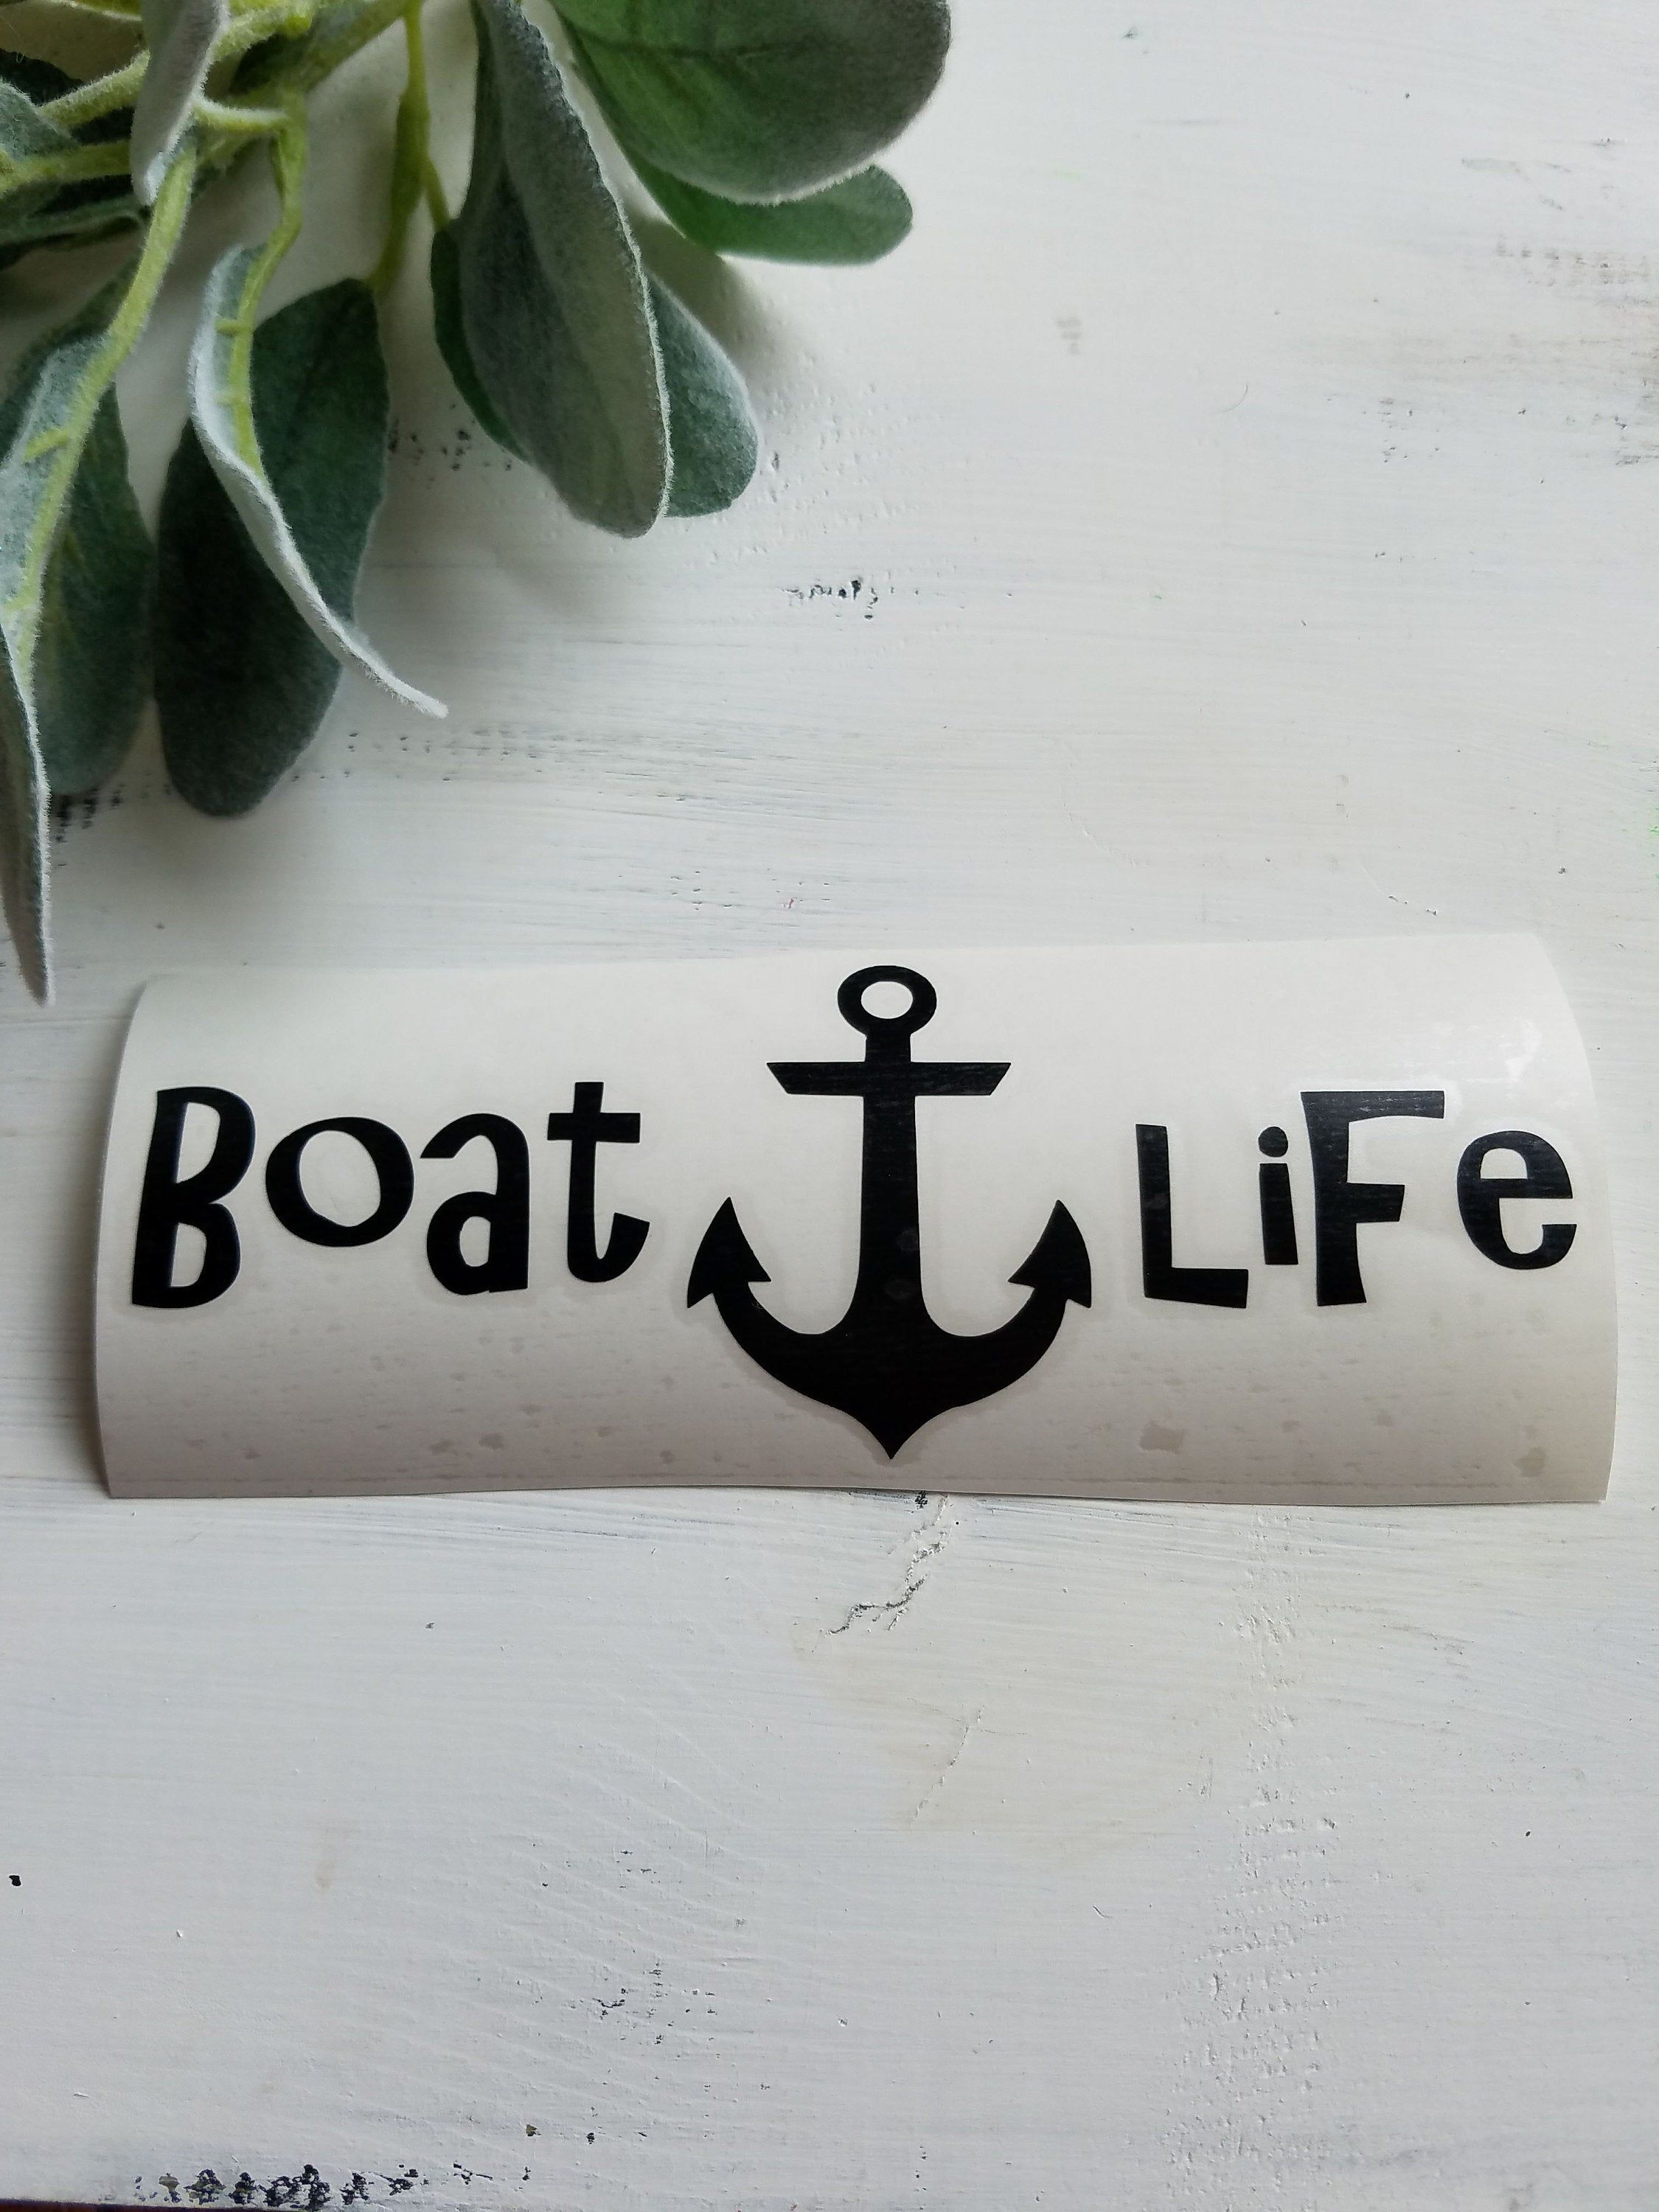 Boat Life Decal I Boat Life I Decals I Boat Decal I Etsy Decals For Yeti Cups Boat Decals Nautical Decals [ 3000 x 2250 Pixel ]